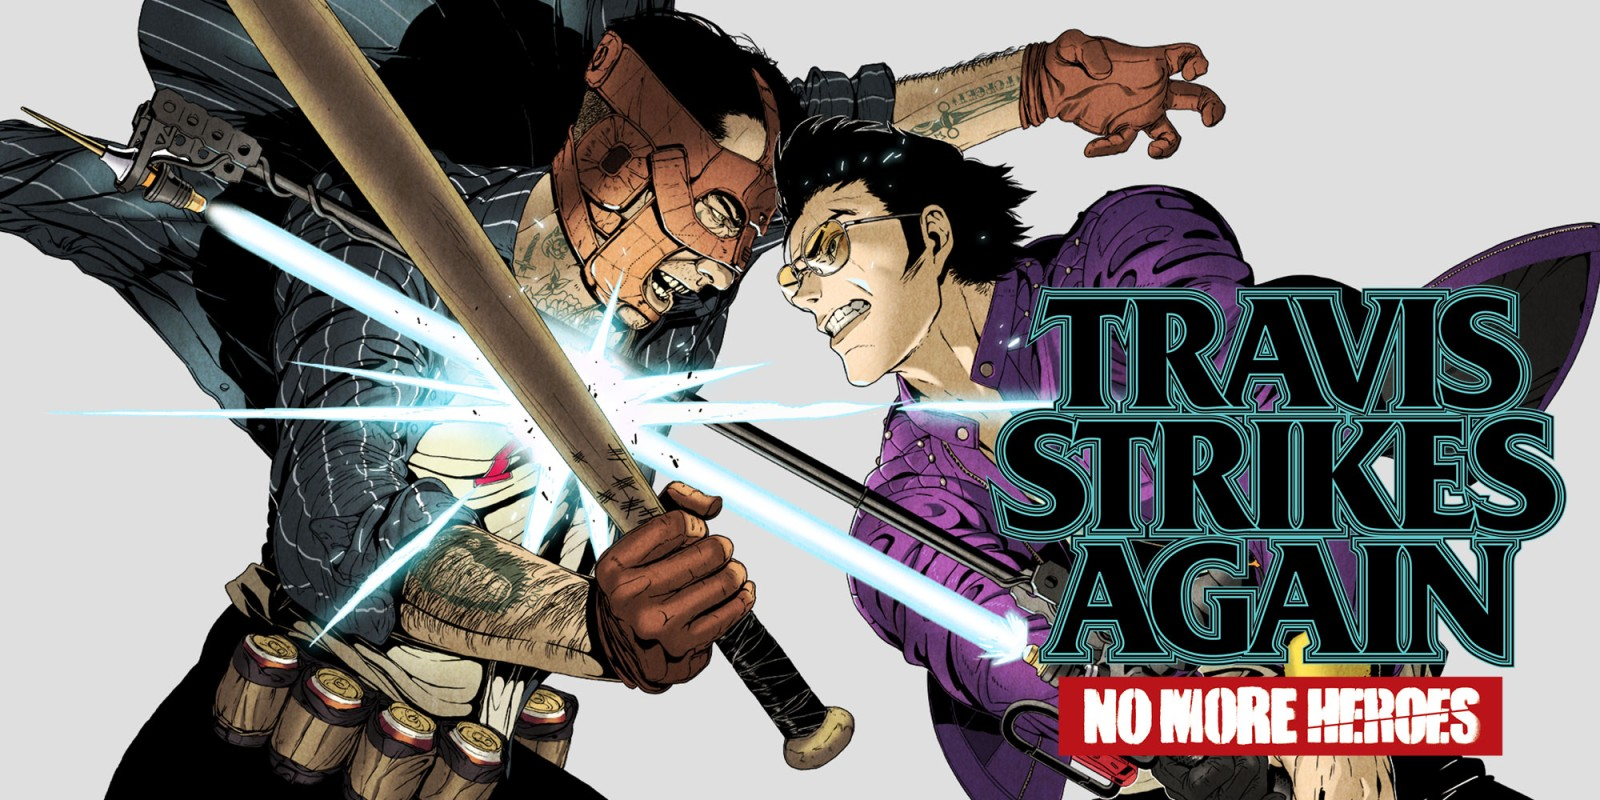 Travis Strikes Again No More Heroes Nintendo Switch Juegos